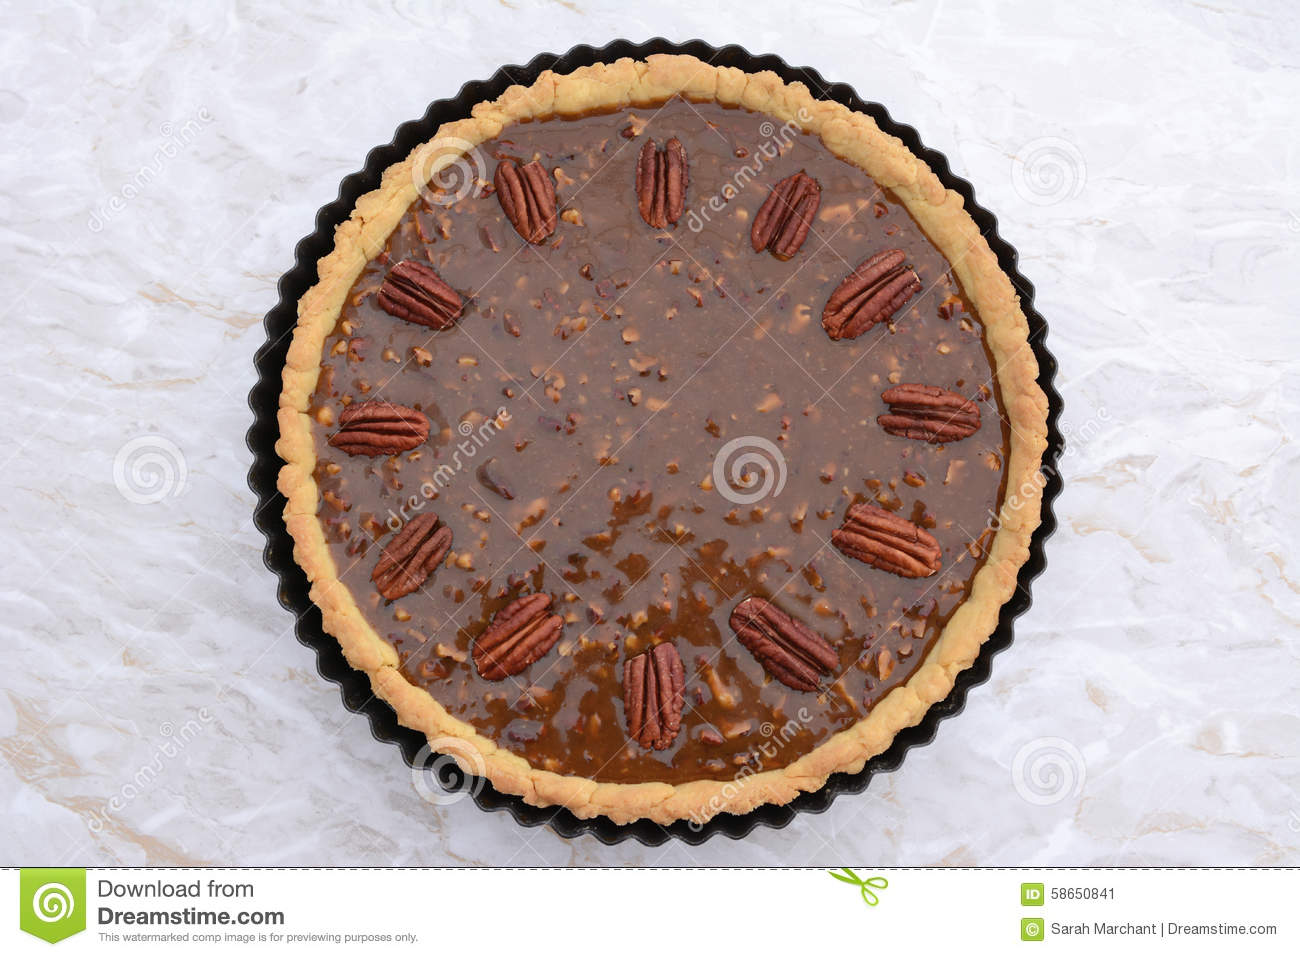 Pecan Pie Decorated With Nuts Ready To Be Baked Stock Photo - Image ...